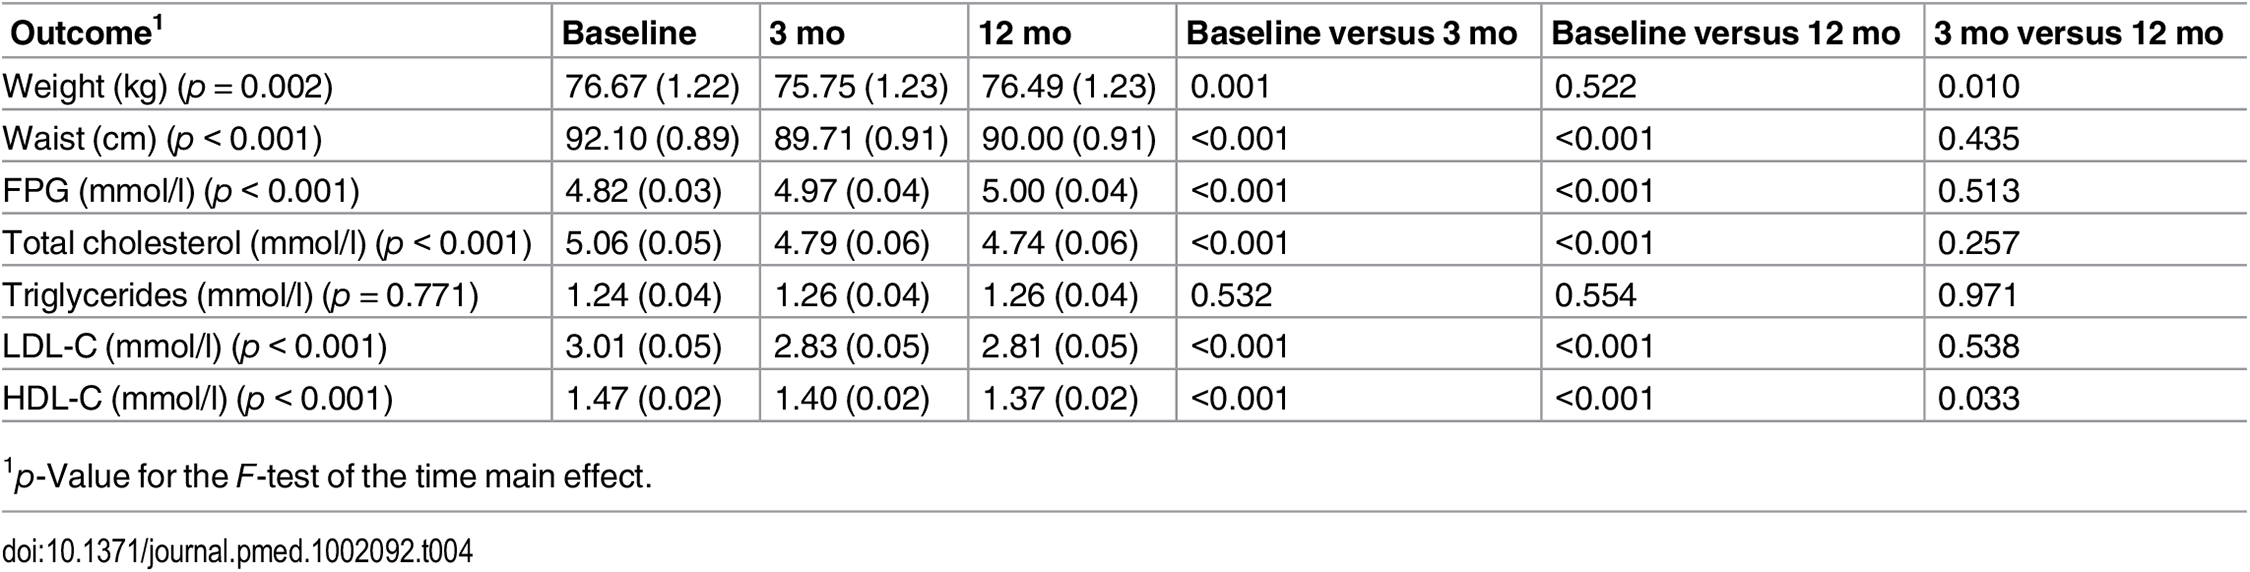 Predicted means (standard errors) of primary and secondary endpoints for participants in the intervention group at baseline, 3 mo, and 12 mo.